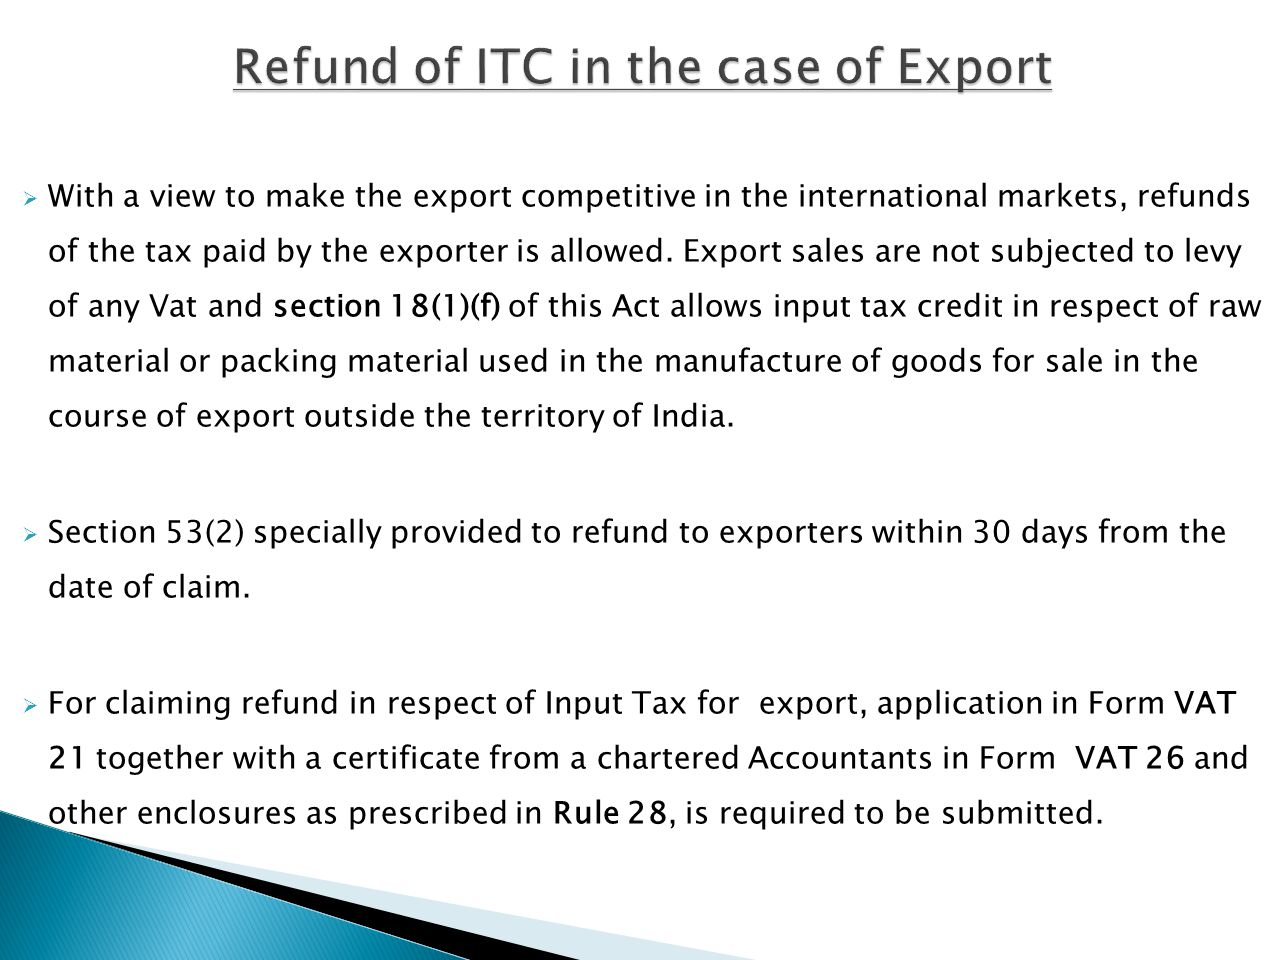 With a view to make the export competitive in the international markets, refunds of the tax paid by the exporter is allowed. Export sales are not subj